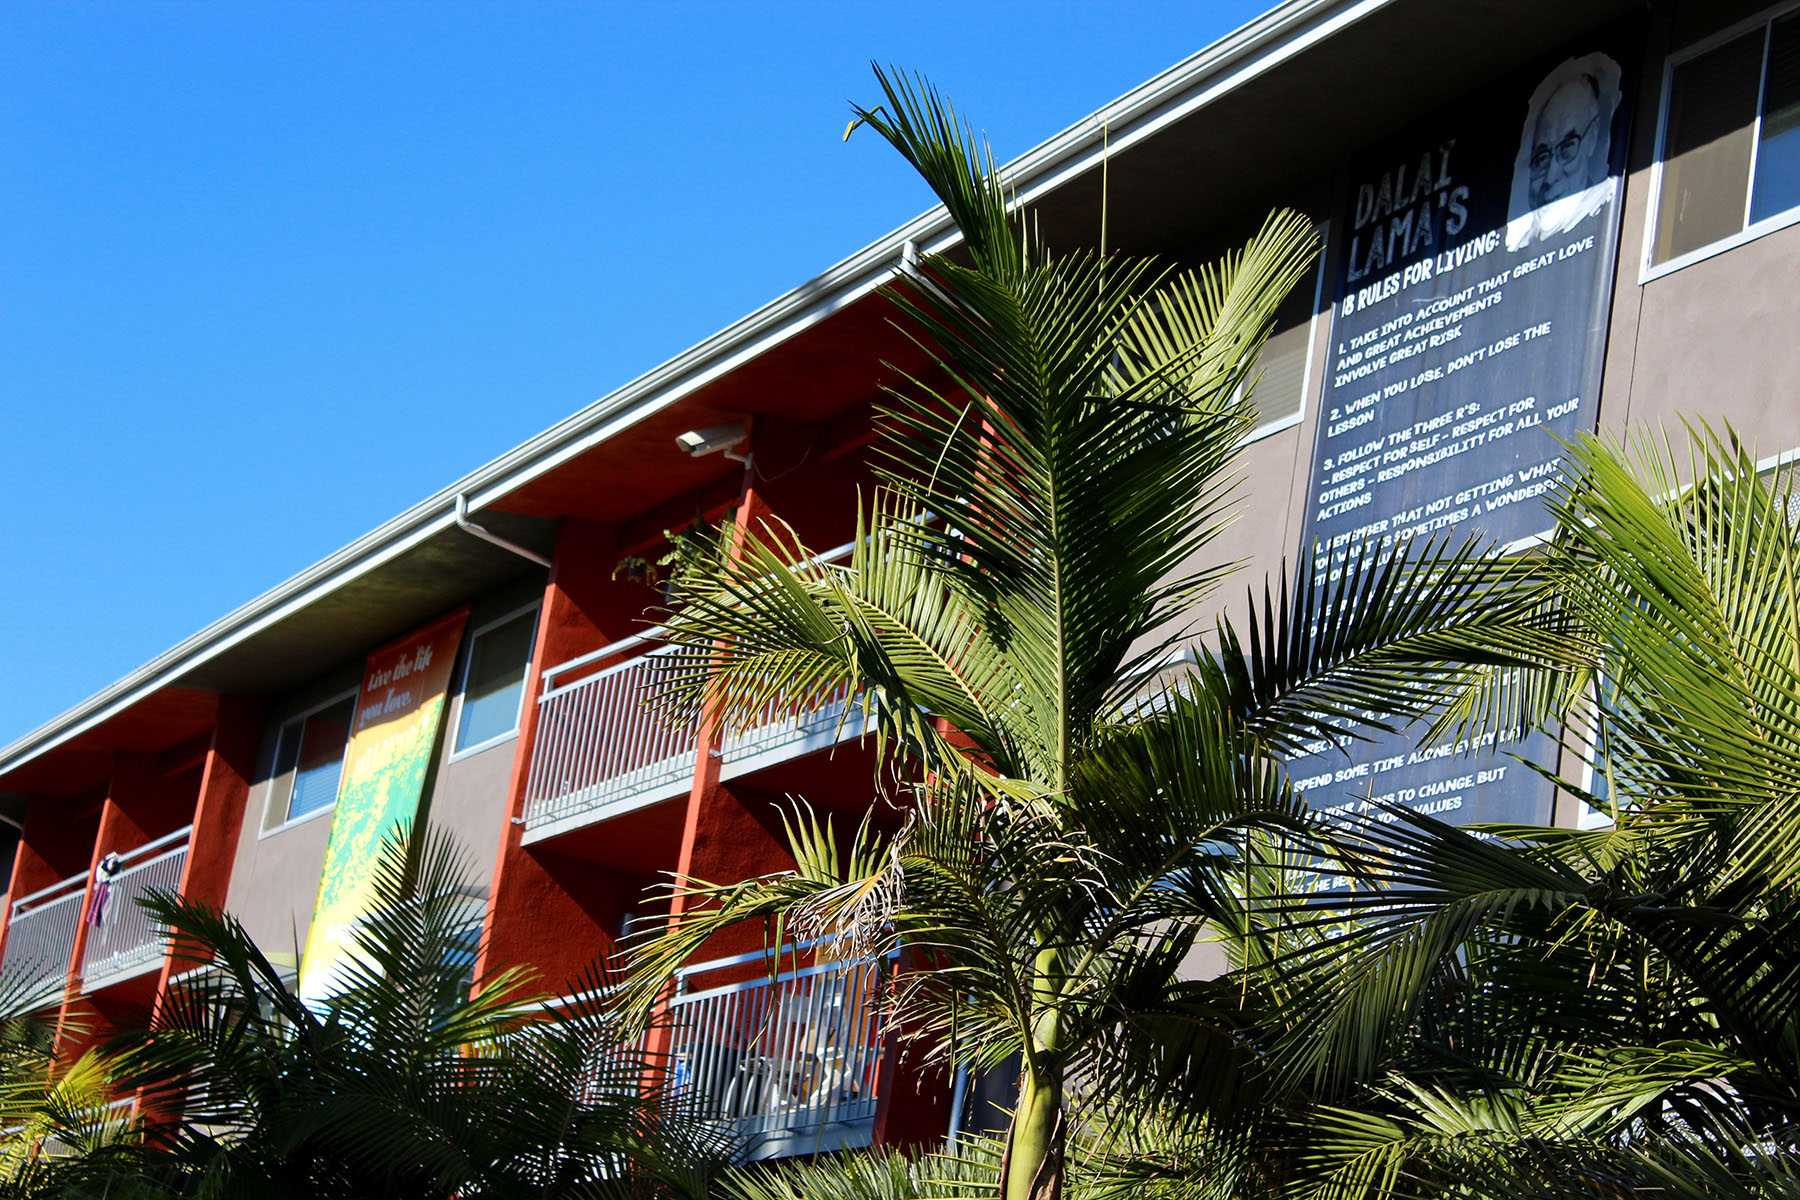 Beach City apartment complex is one of several in the Santa Barbara area that is looking into a rental agreement with Santa Barbara City College, Nov. 19, on Cliff Drive between East and West Campus.